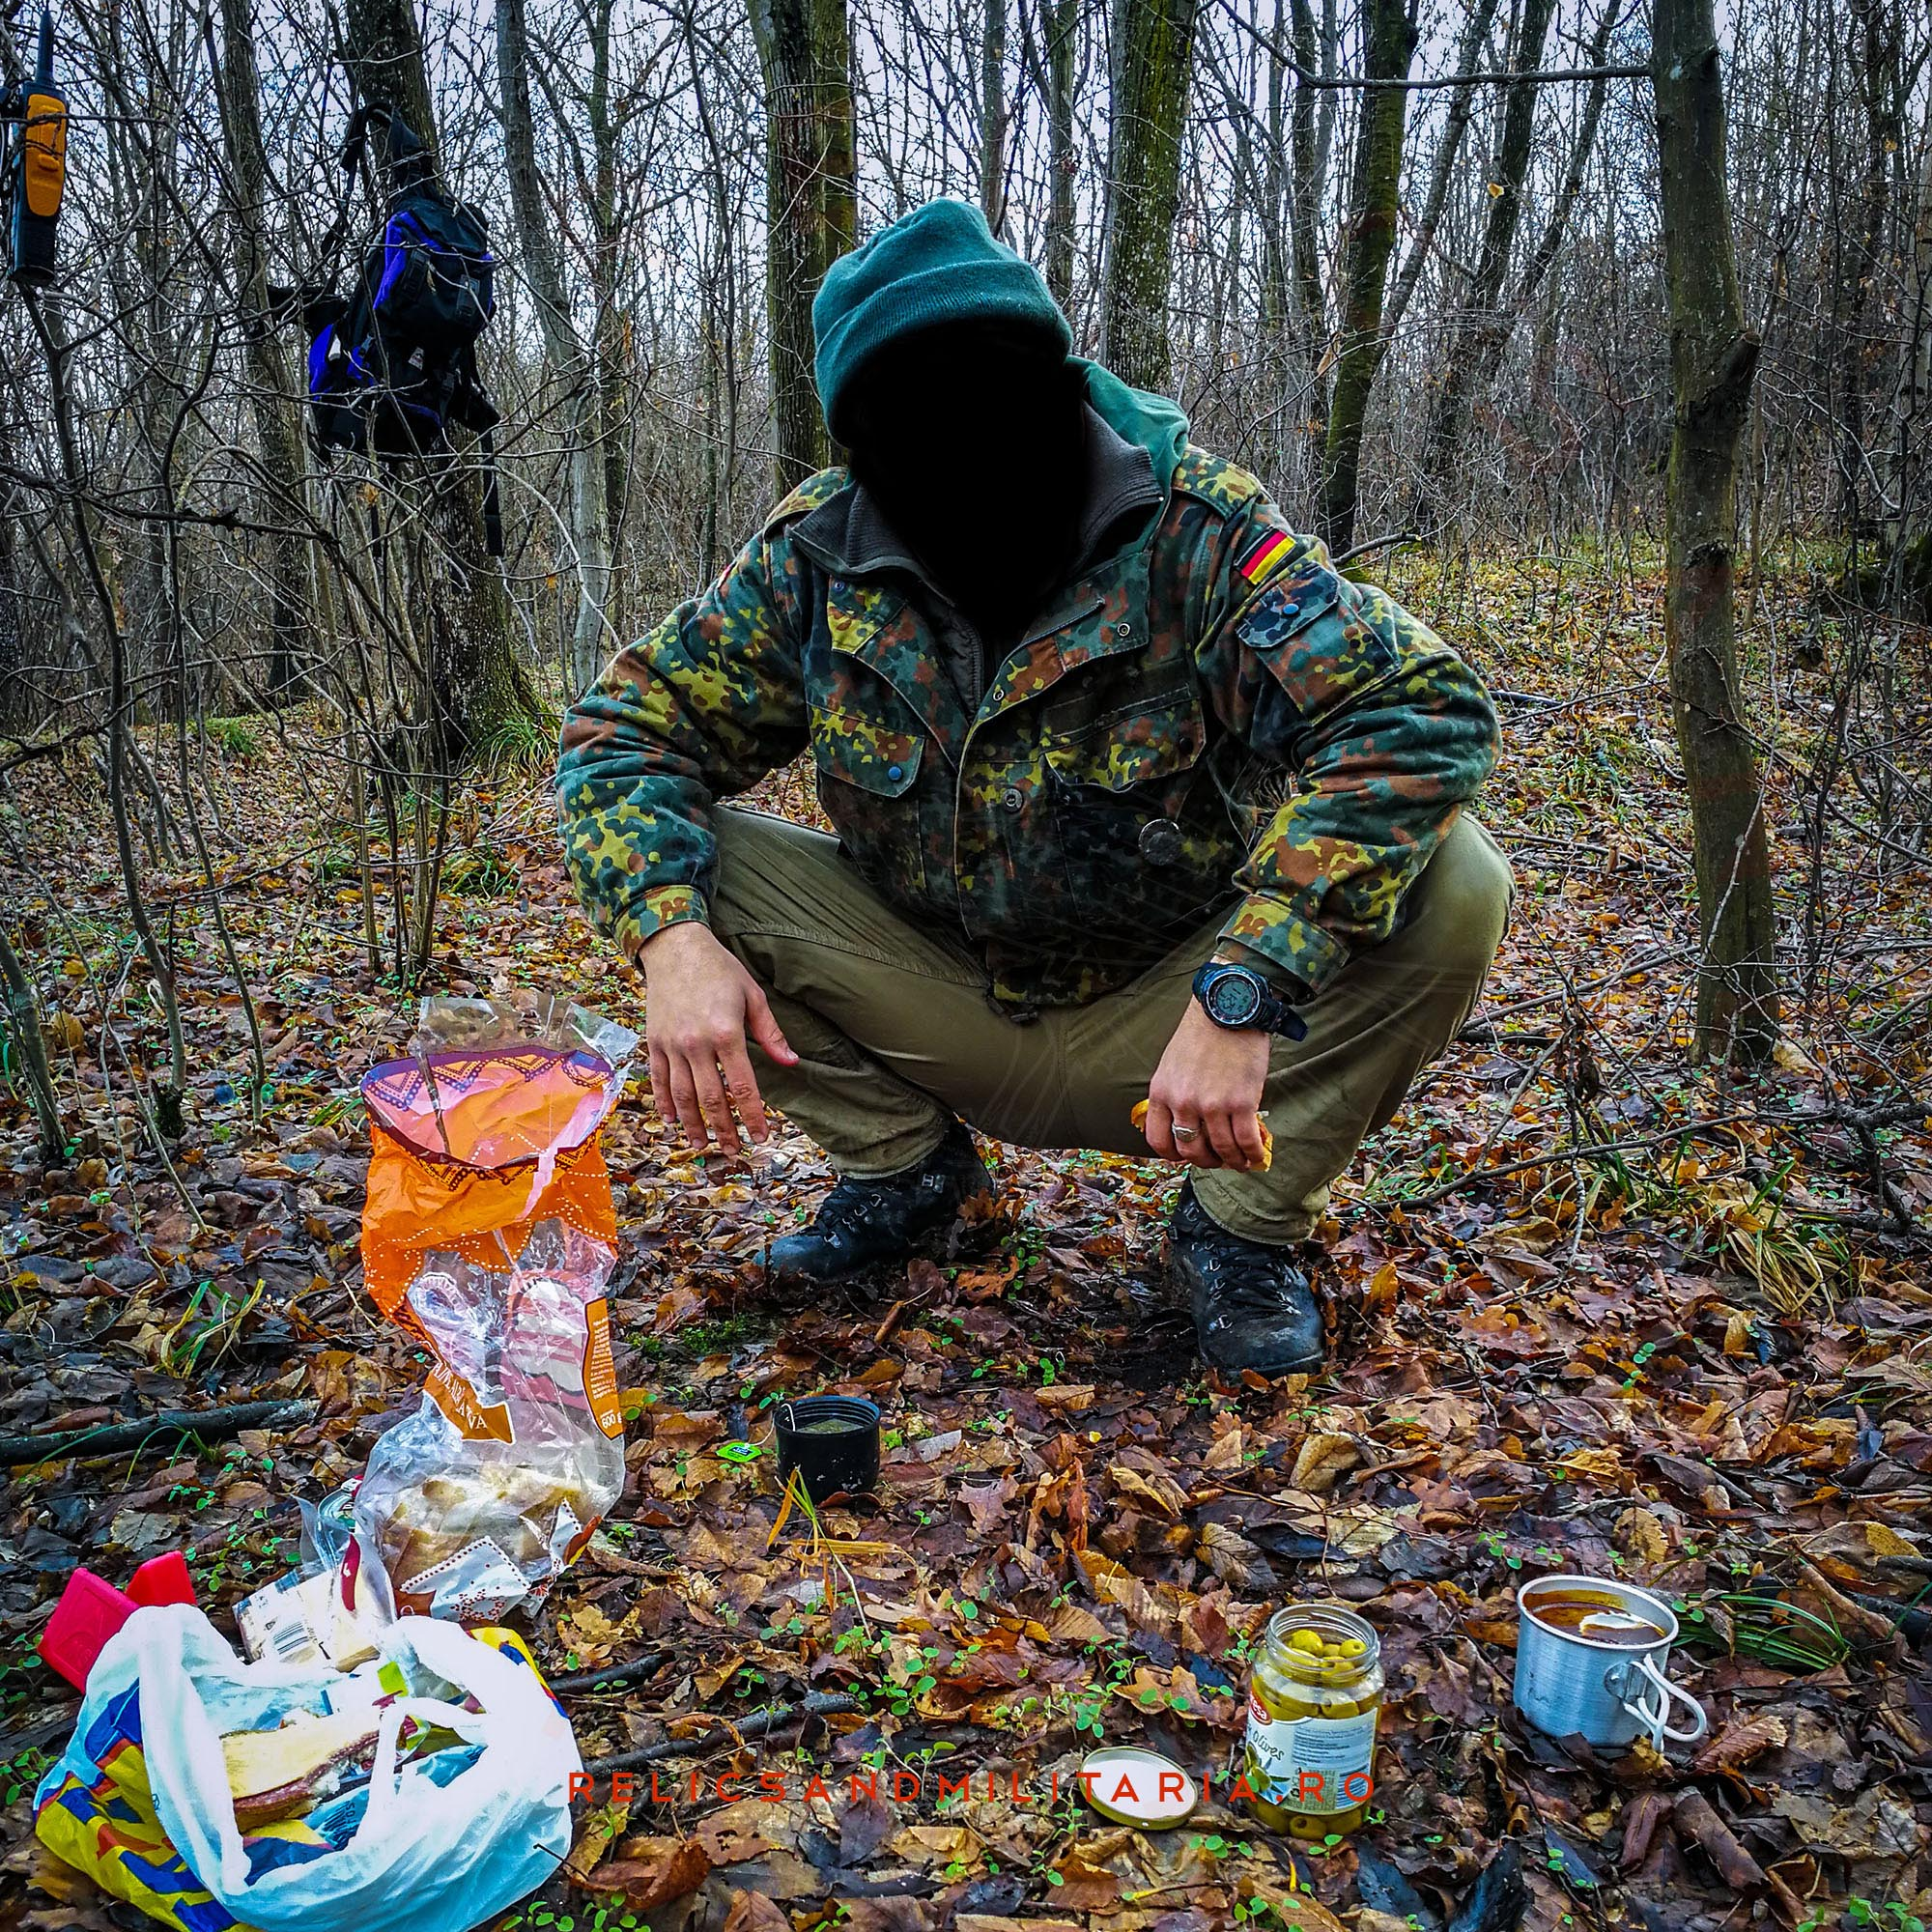 Gopnic in forest metal detecting in Romania